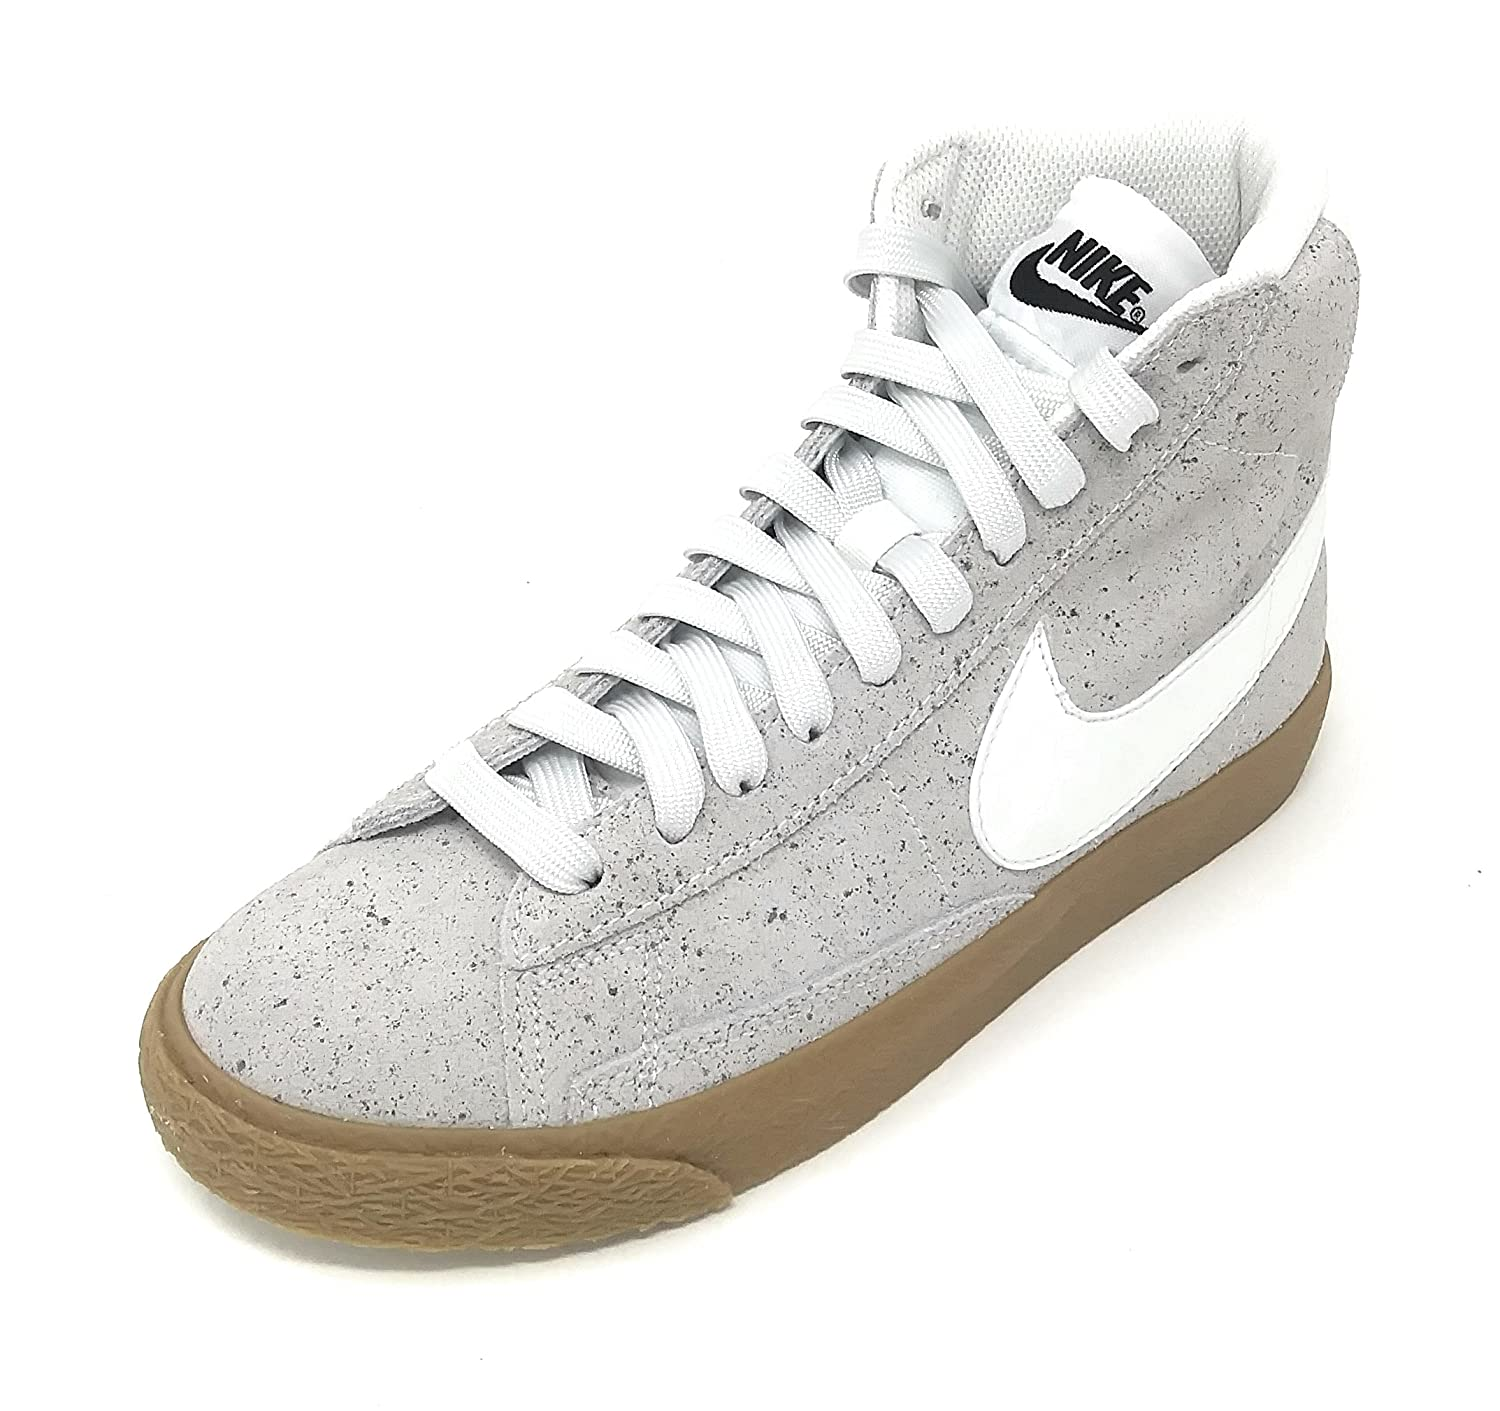 separation shoes 5a821 a4ac6 Amazon.com | Nike Blazer MID (GS) Off White/White - Black ...